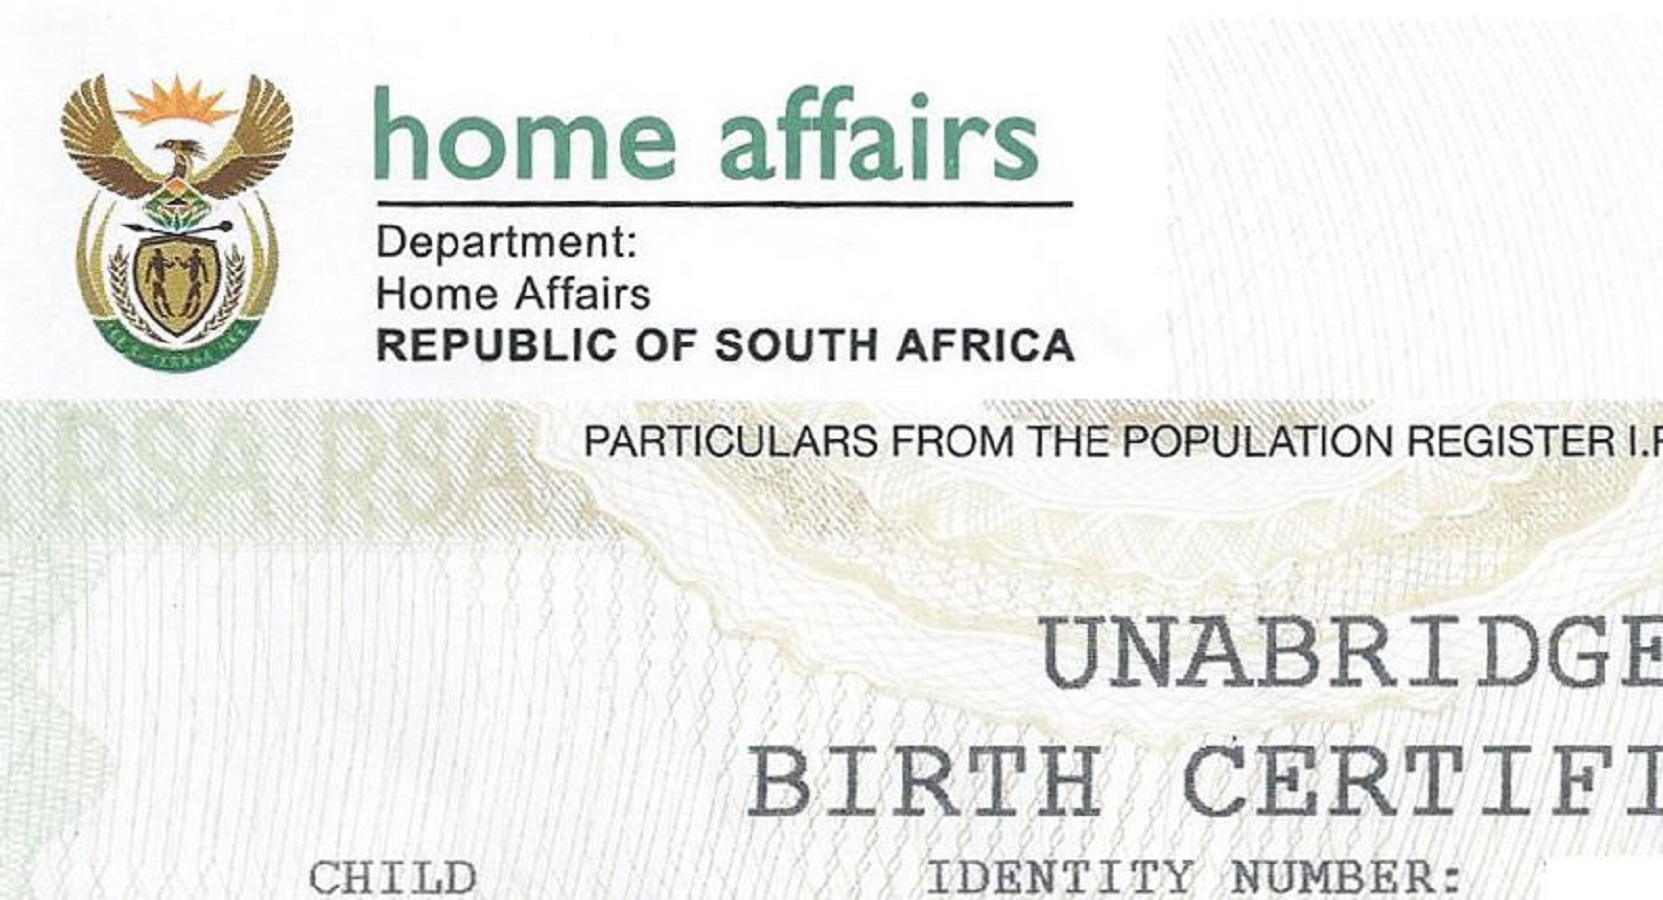 How to get a south african unabridged birth certificate quickly unabridged birth certificate xflitez Choice Image